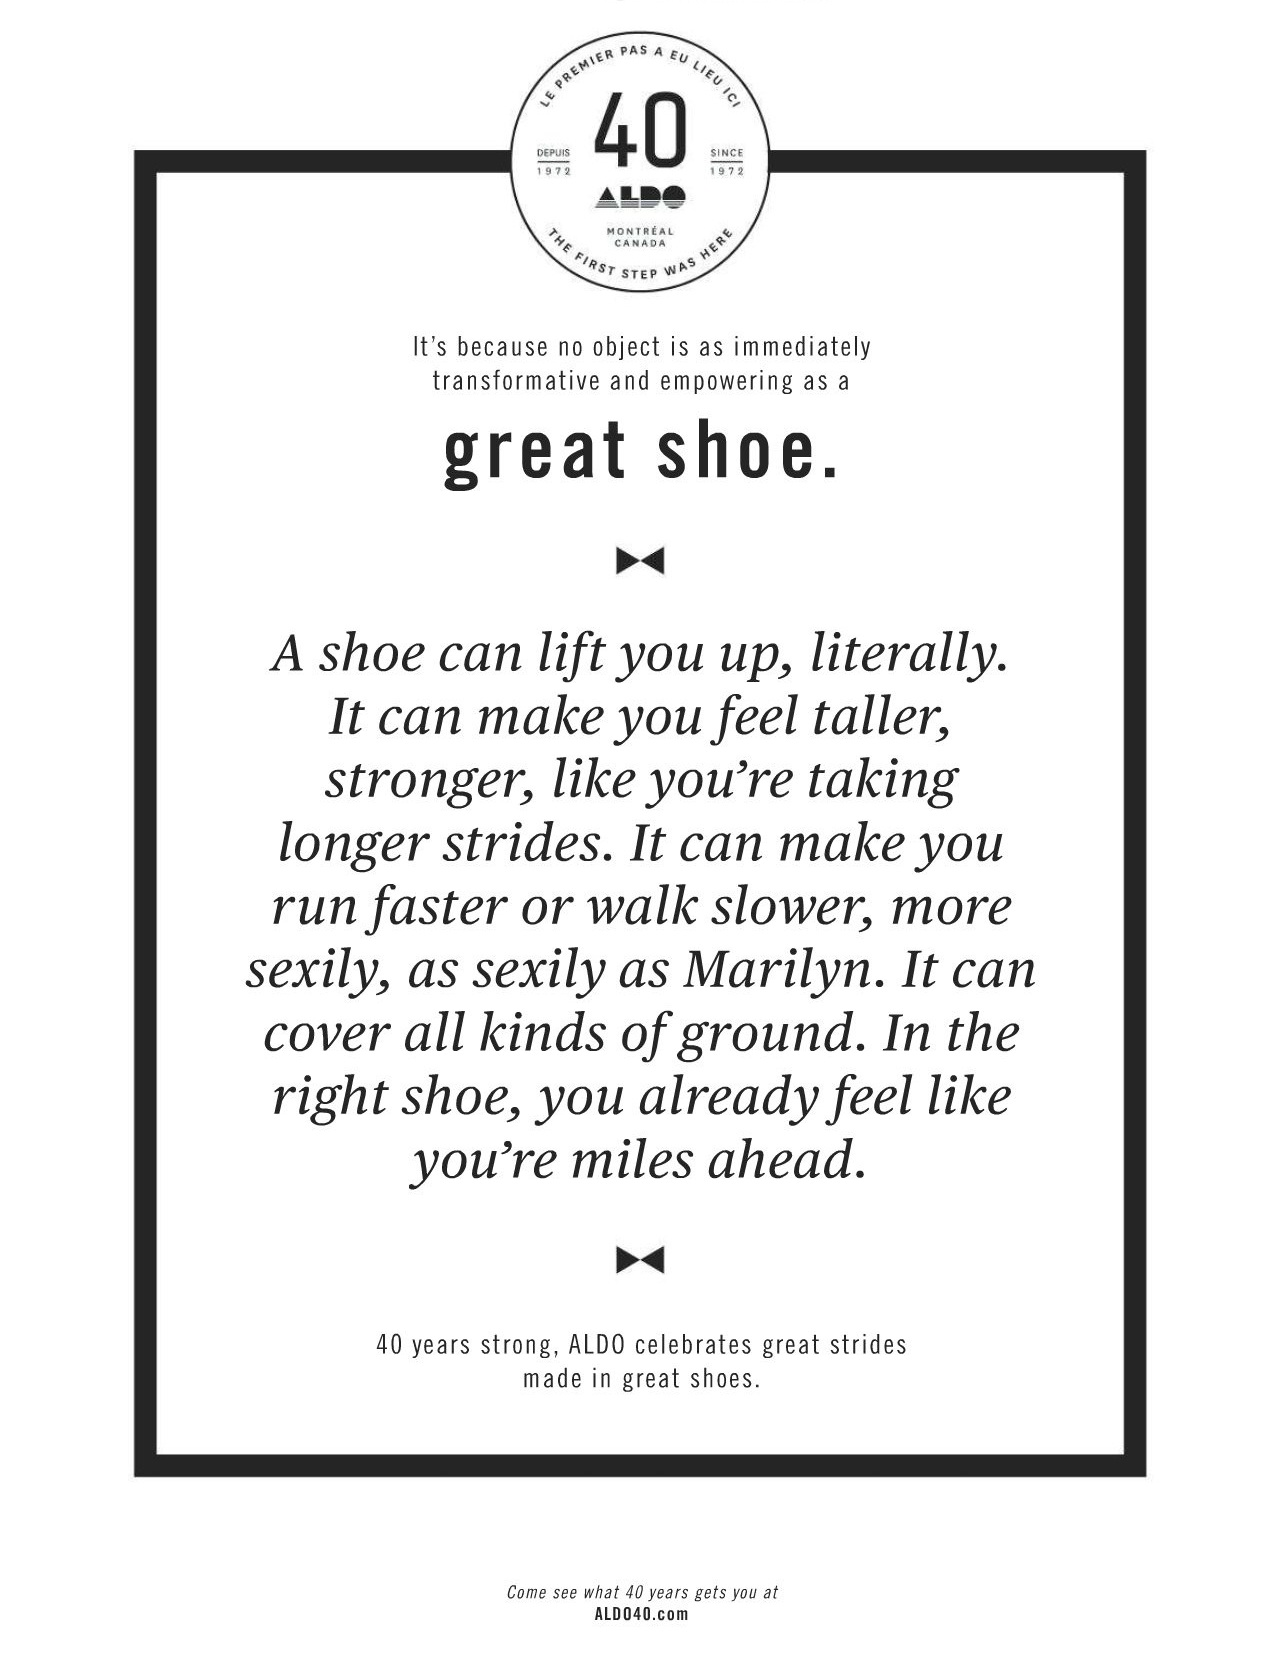 Inspirational Quotes: Great Shoe (By Aldo) – Titoley